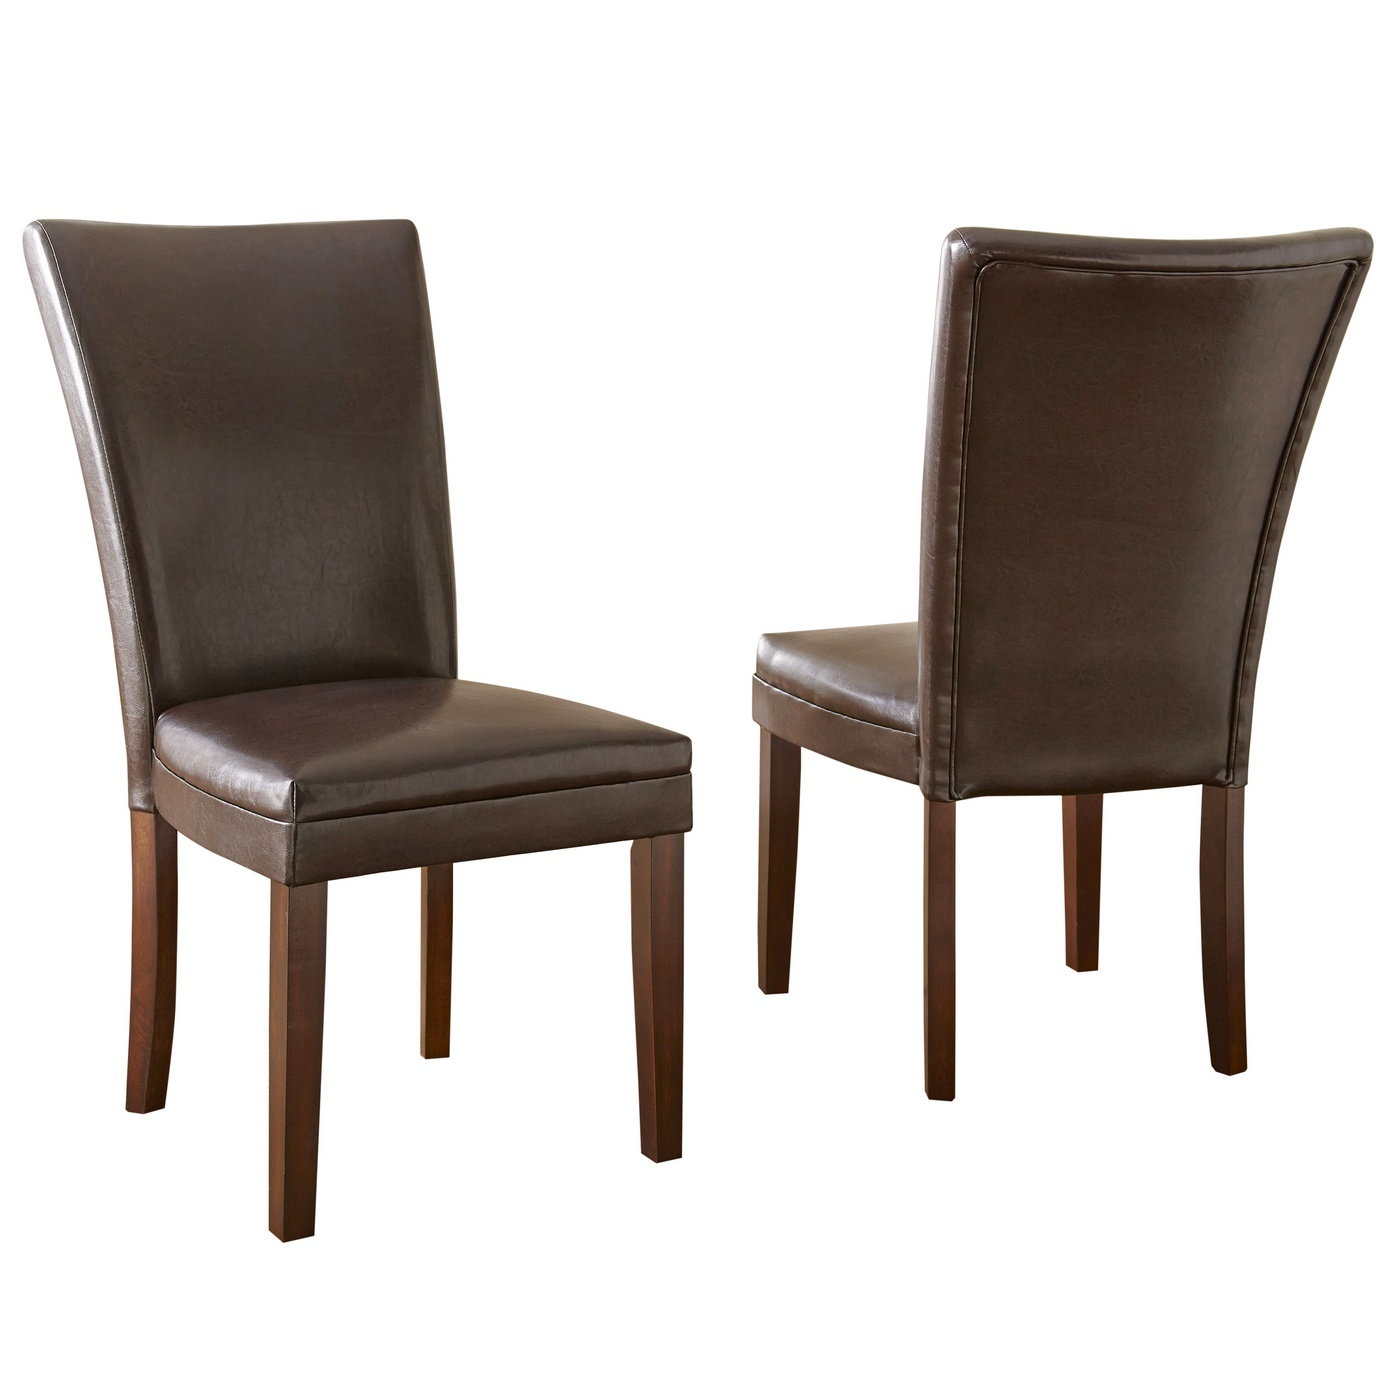 Set of 2 hartford contemporary brown leather upholstered for Upholstered dining chairs contemporary